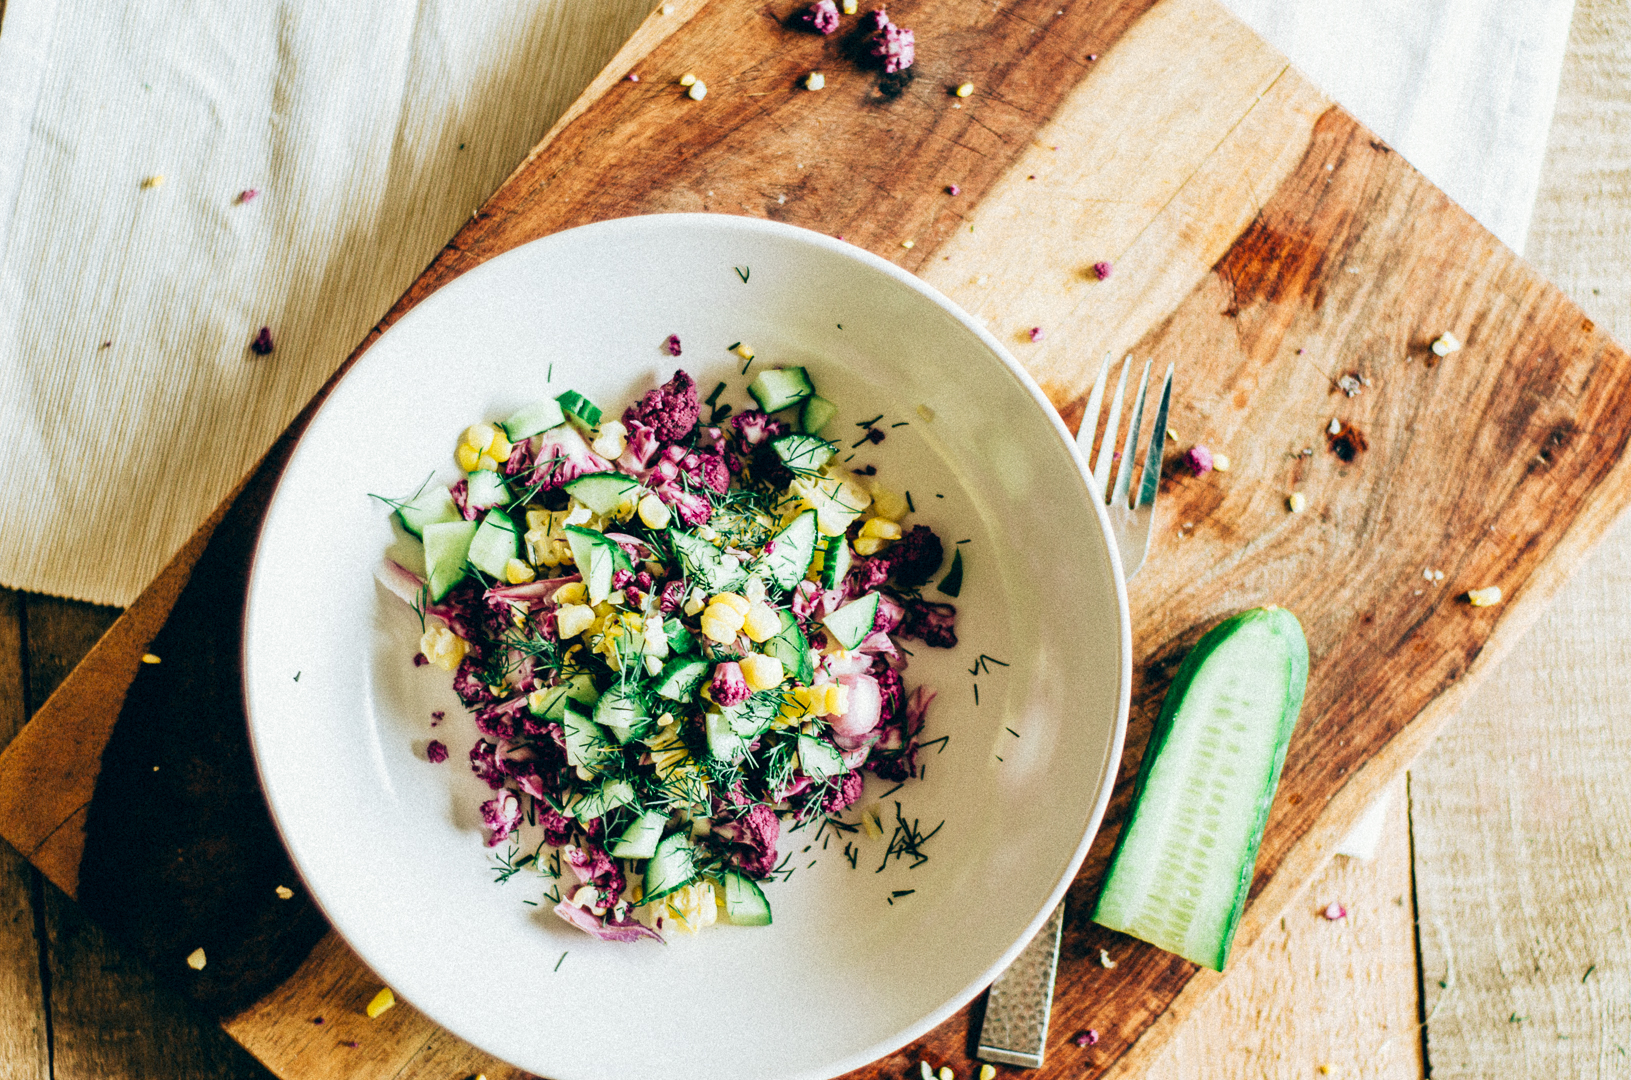 Cauliflower, Corn & Cucumber salad recipe is perfect for a fall harvest. It's a lovely vegetarian salad recipe. thenomadicwife.com